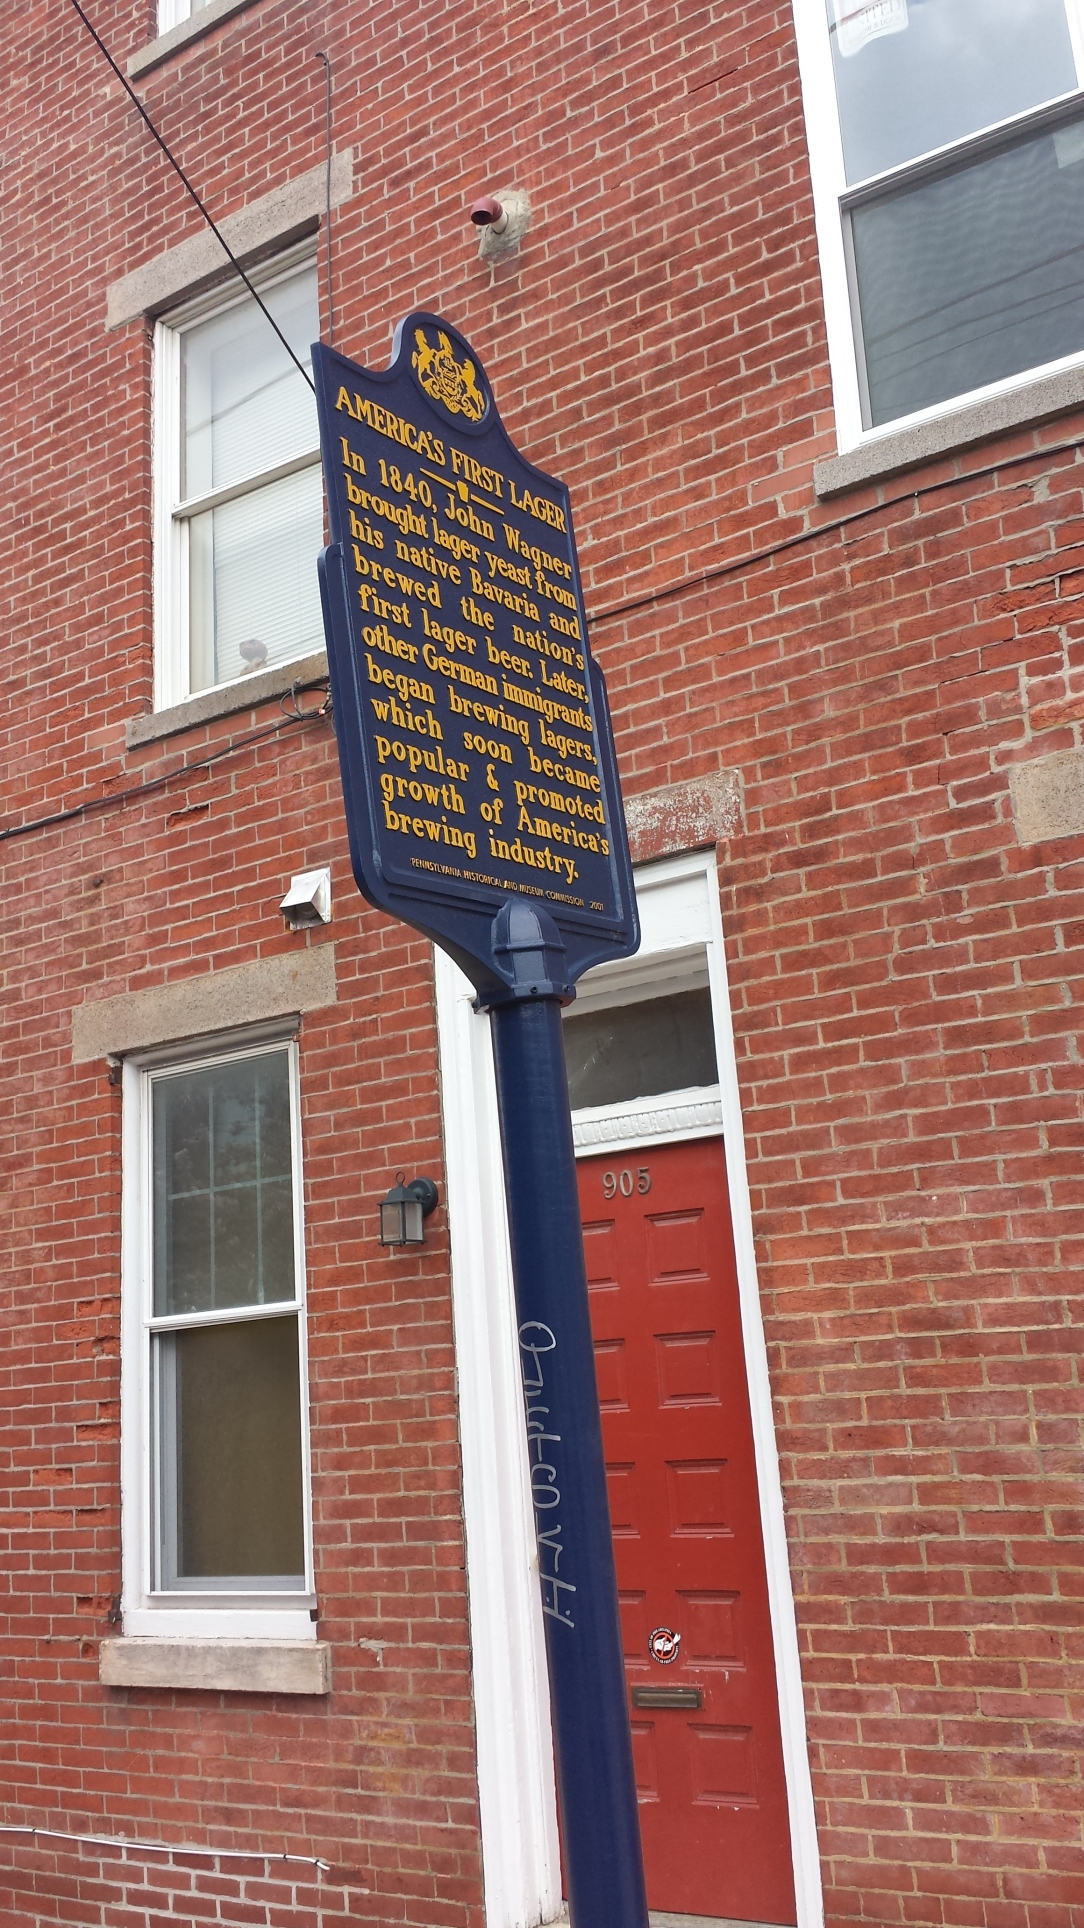 It wasn't just a pub crawl. We also stopped at historical markers, like this one where the first U.S. lager was brewed.